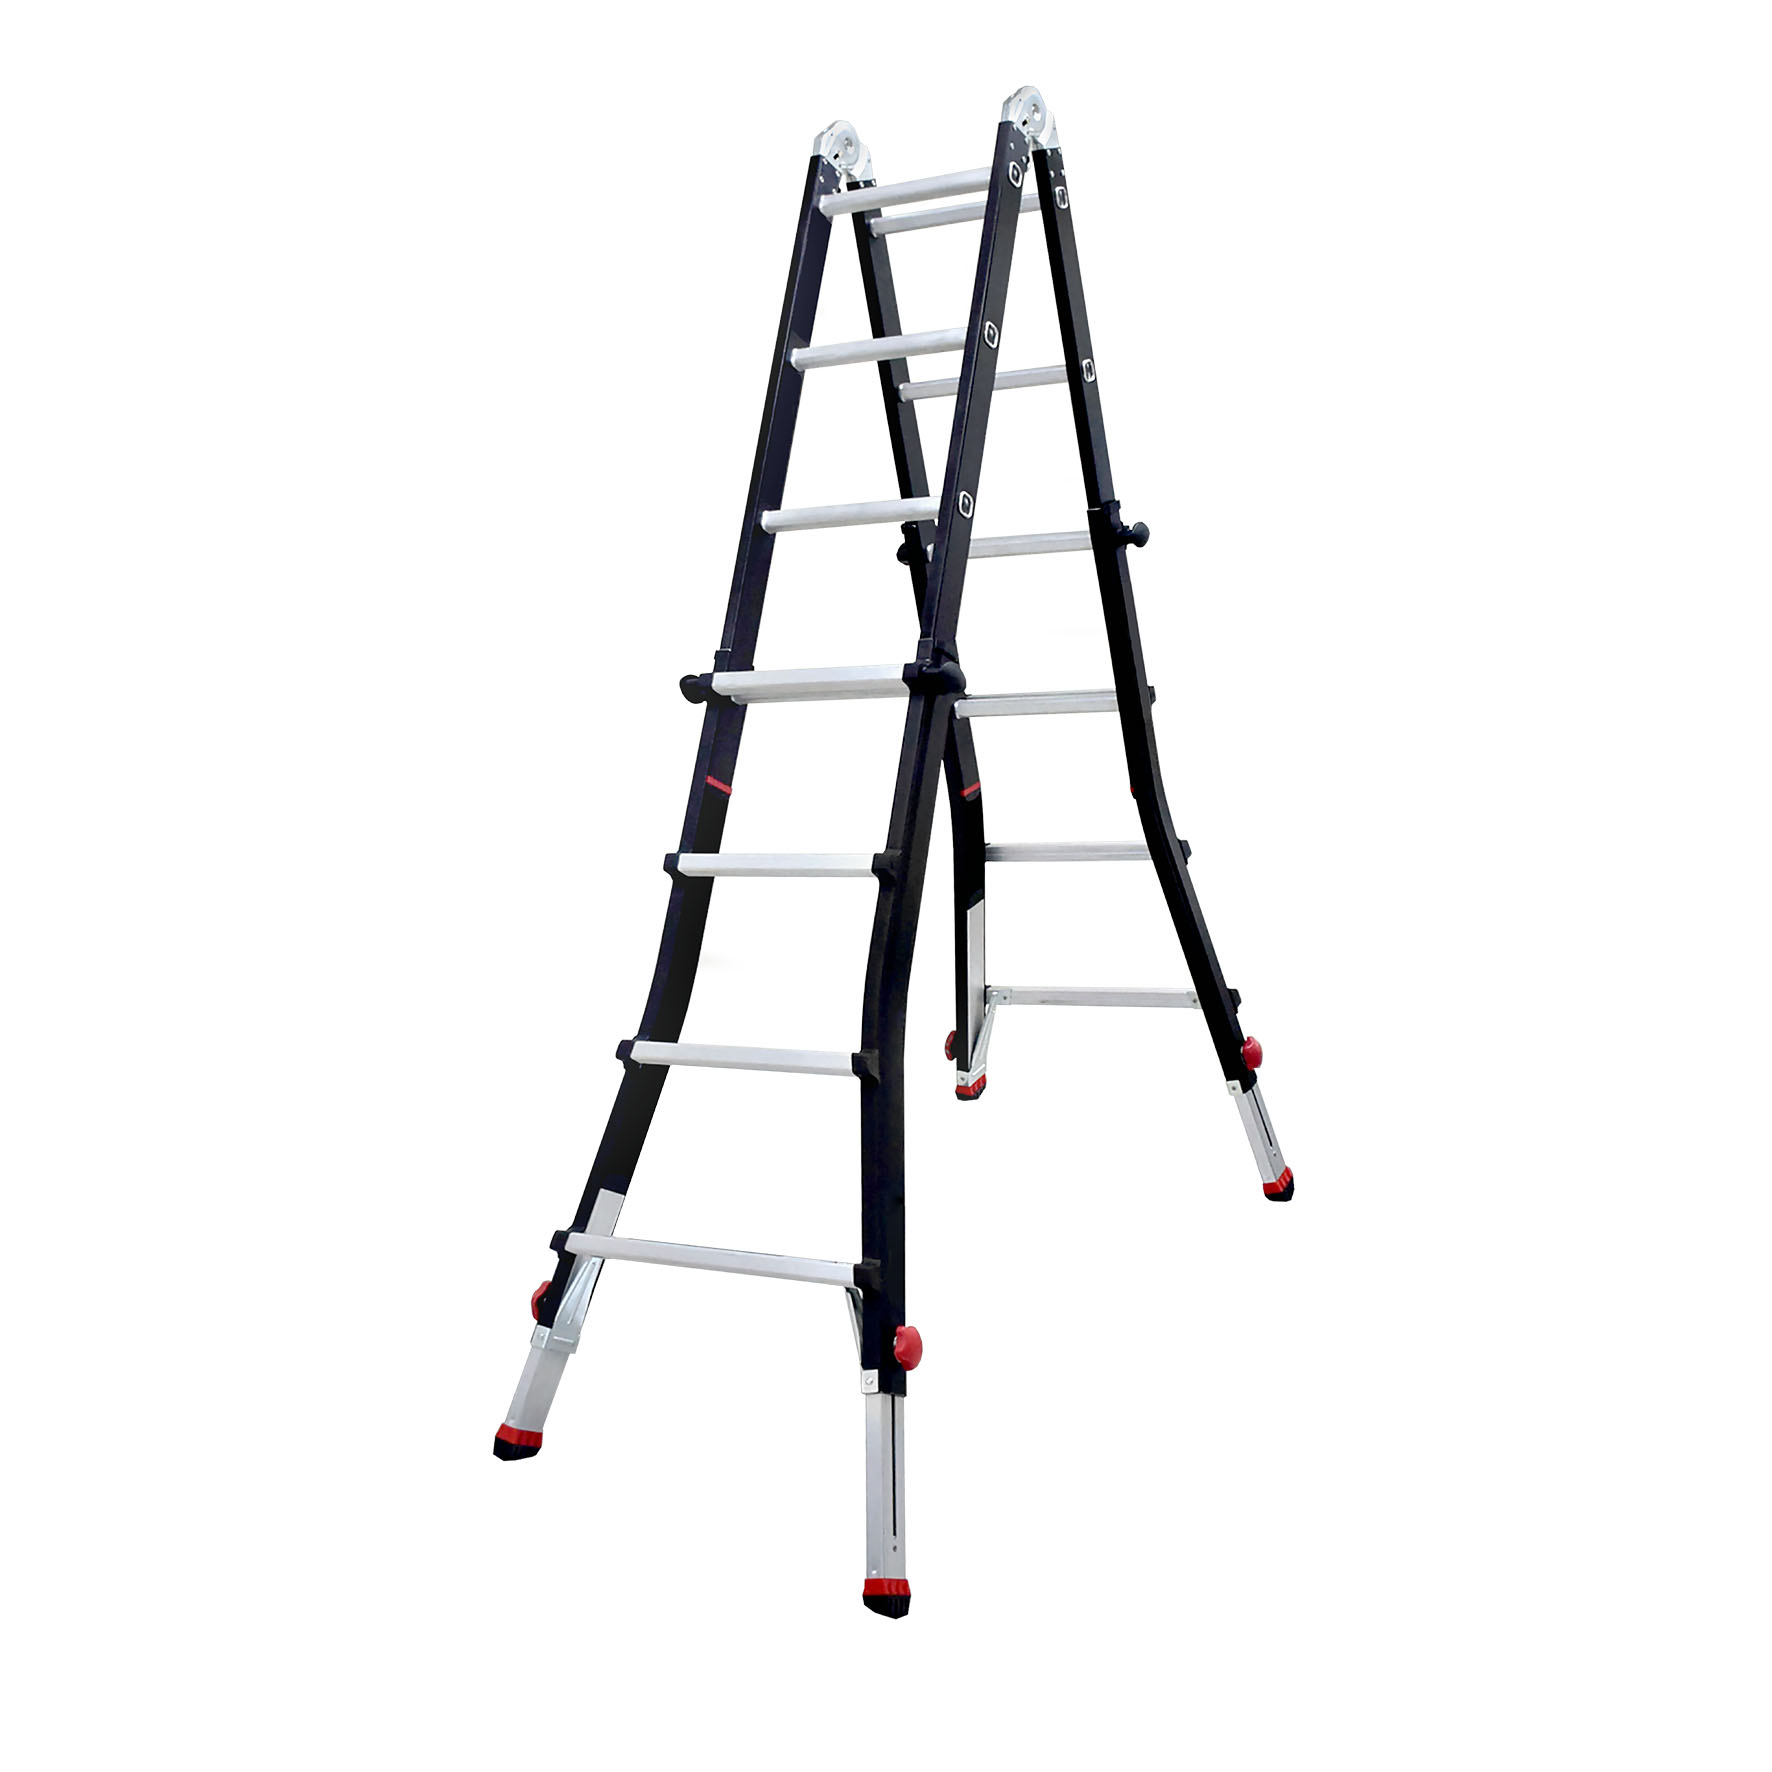 DOFAIR CO., LTD.-Telescopic folding ladder with extension feet